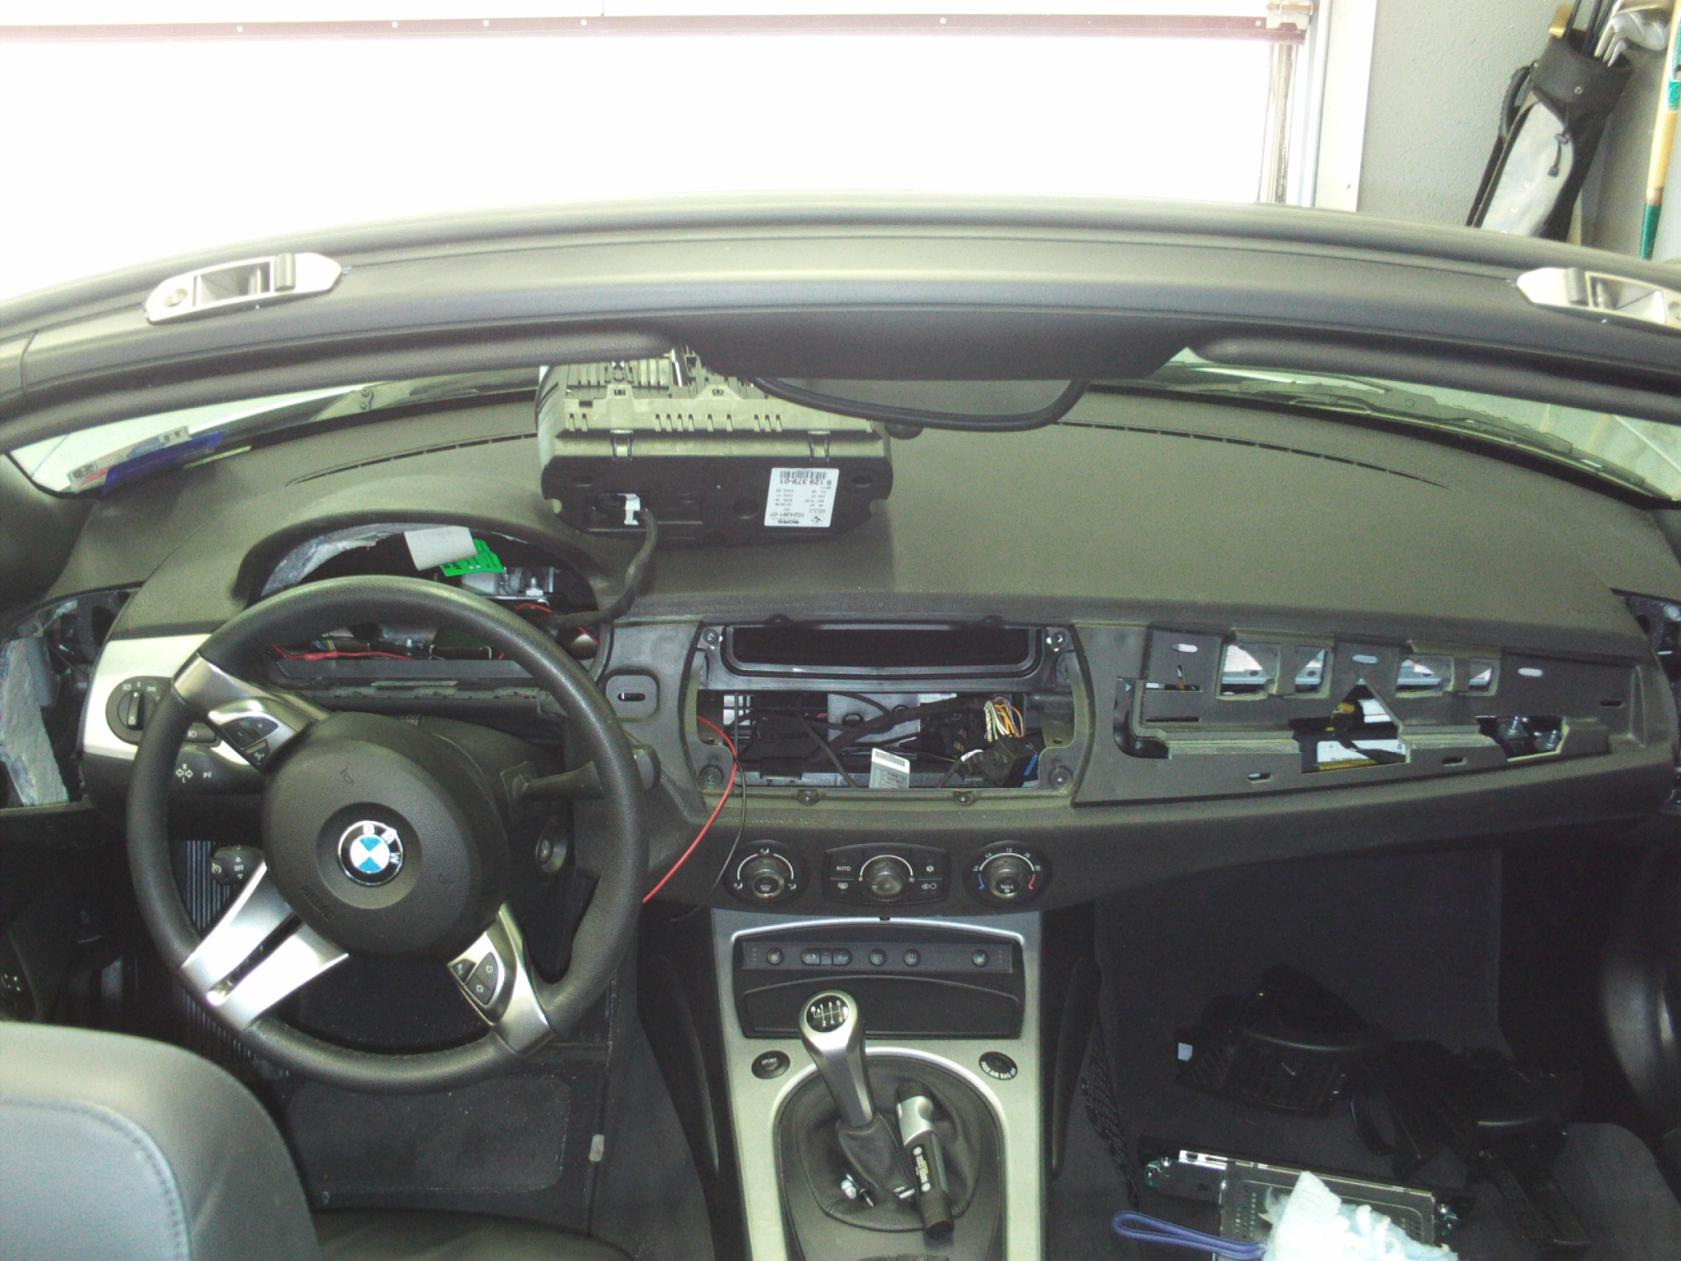 Fuse Box Diagram Likewise Bmw E60 On Bmw E30 Fuse Box